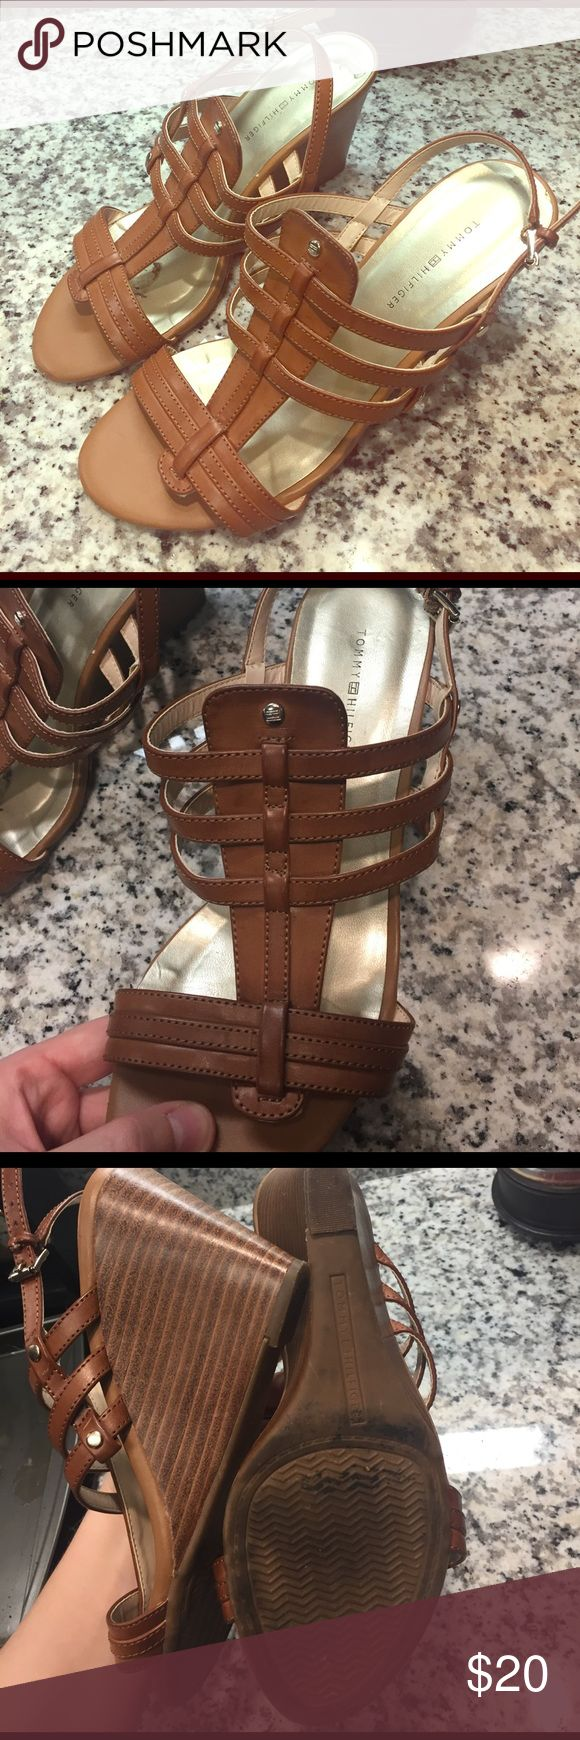 Tommy Hilfiger Heels Wedges Size 6.5 Great condition! Tommy Hilfiger Shoes Heels